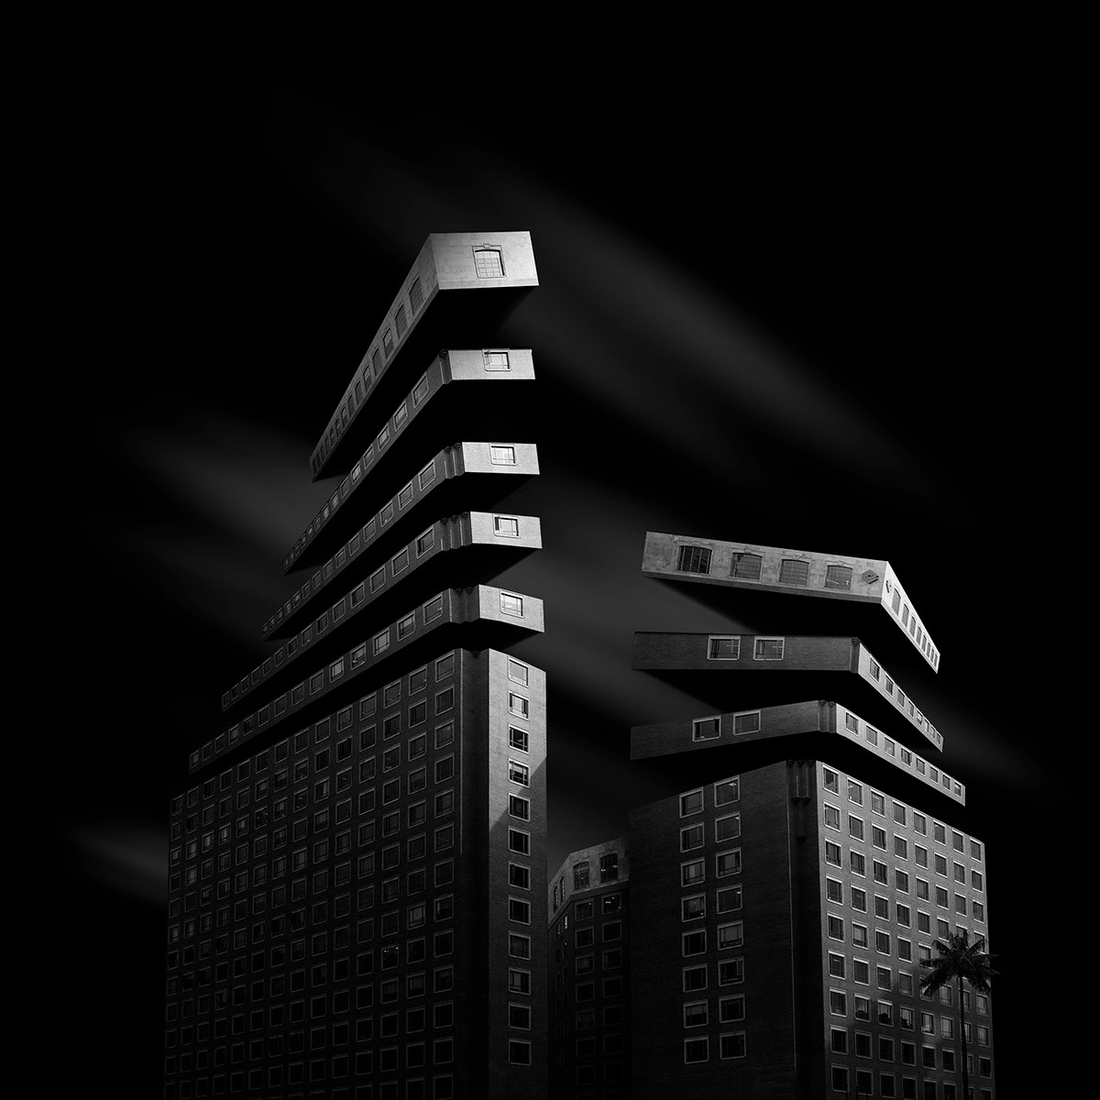 09-Daniel-Garay-Arango-Black-and-White-Surreal-Photographs-Architectural-Deconstruction-www-designstack-co